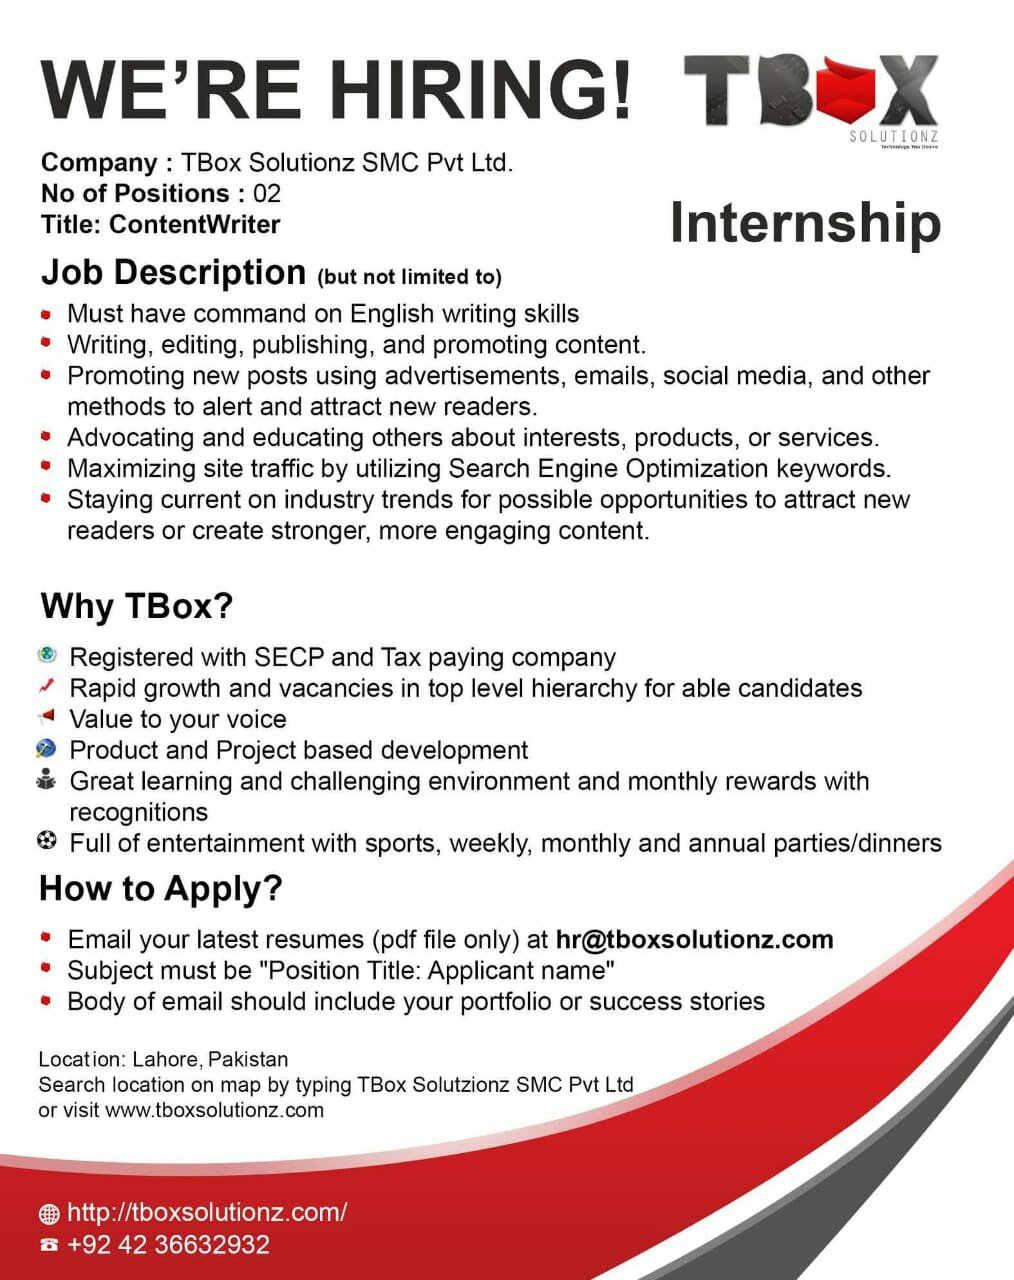 Content Writer Required!